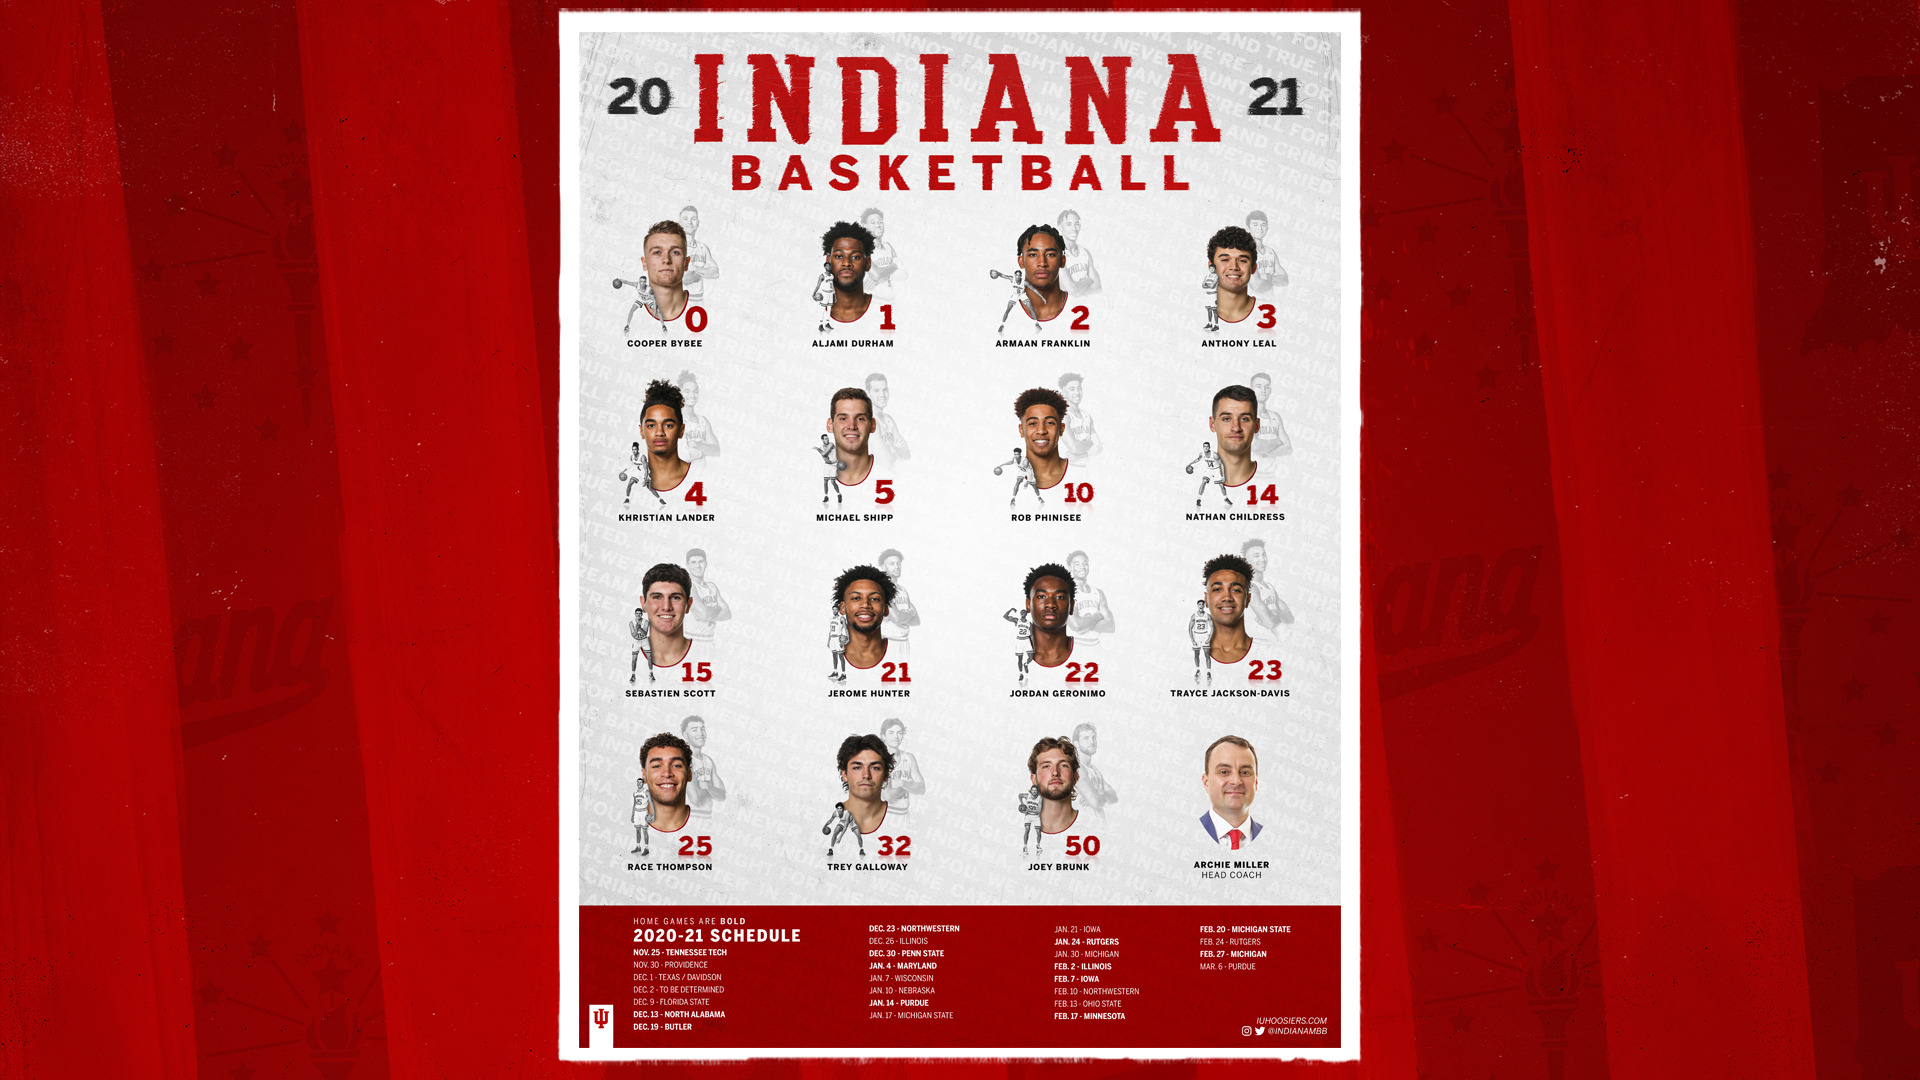 Indiana University Calendar 2022.Iconic Iu Men S Basketball Poster Now Available Can Be Ordered On Line Indiana University Athletics